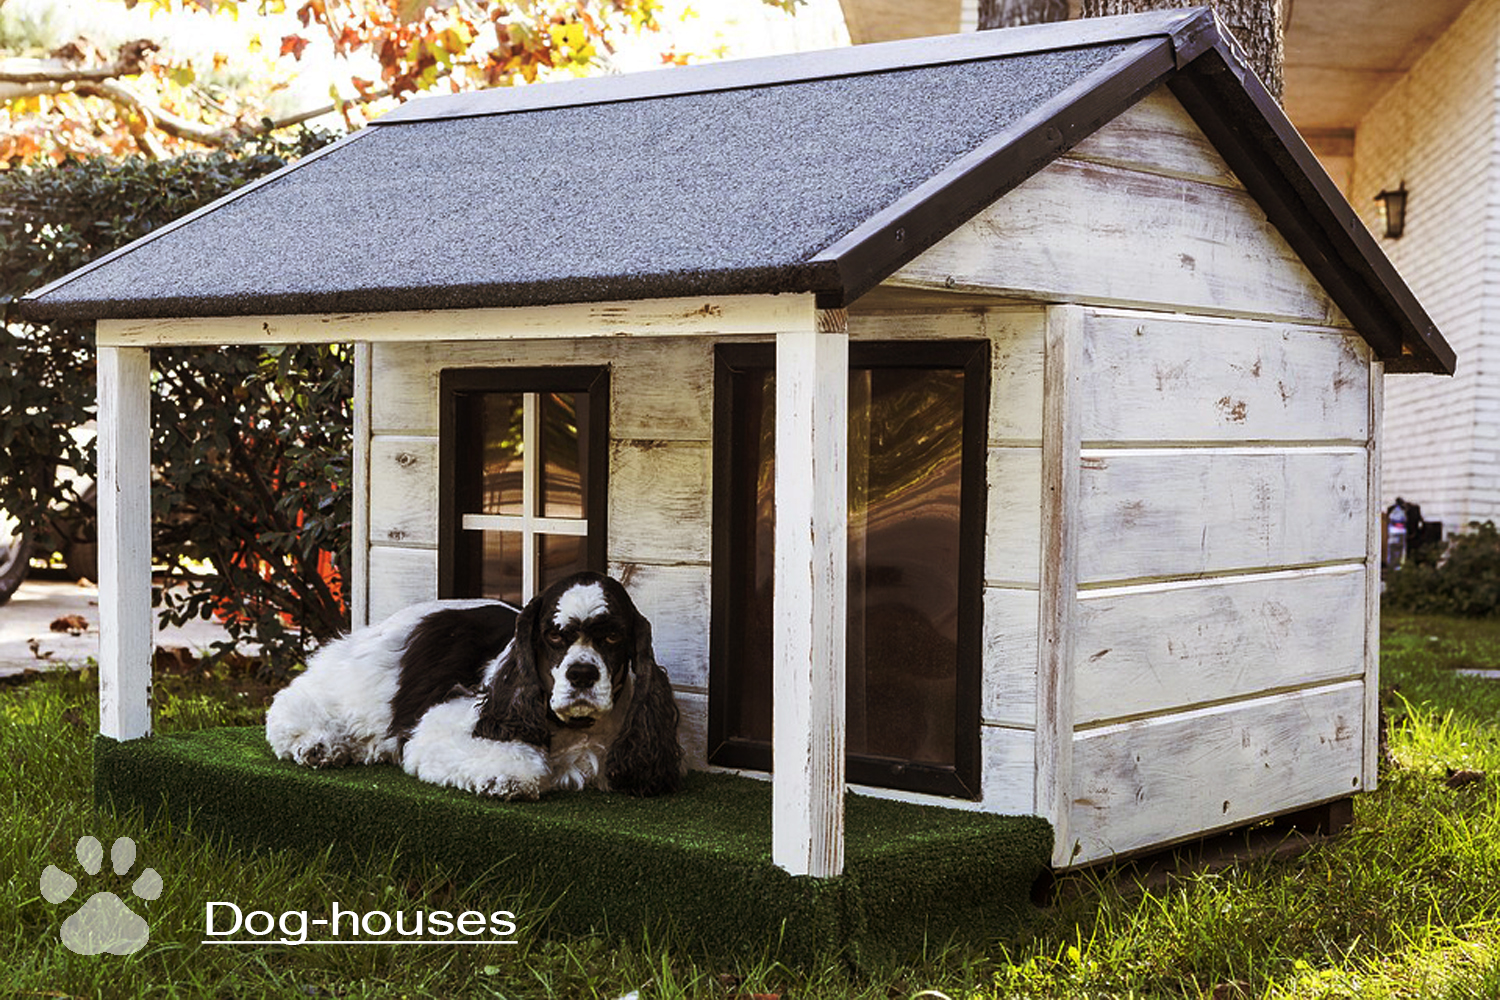 dog-houses and fence